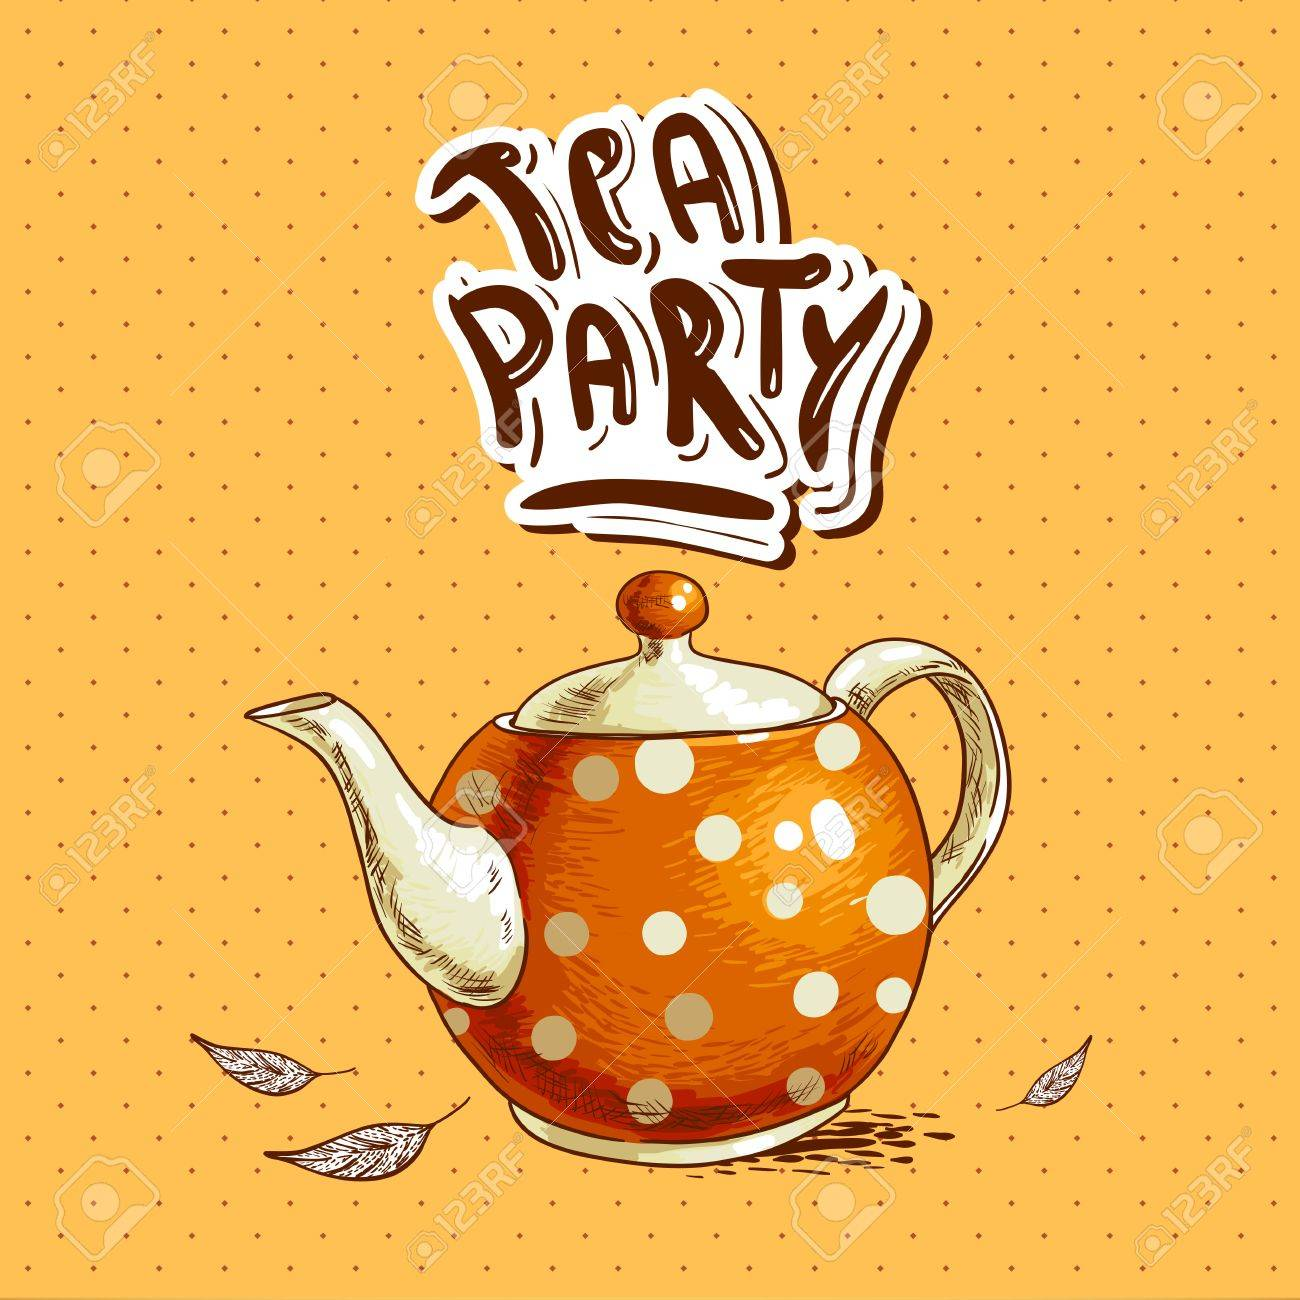 Tea Party Invitation Card With A Cups And Pot Royalty Free Cliparts ...